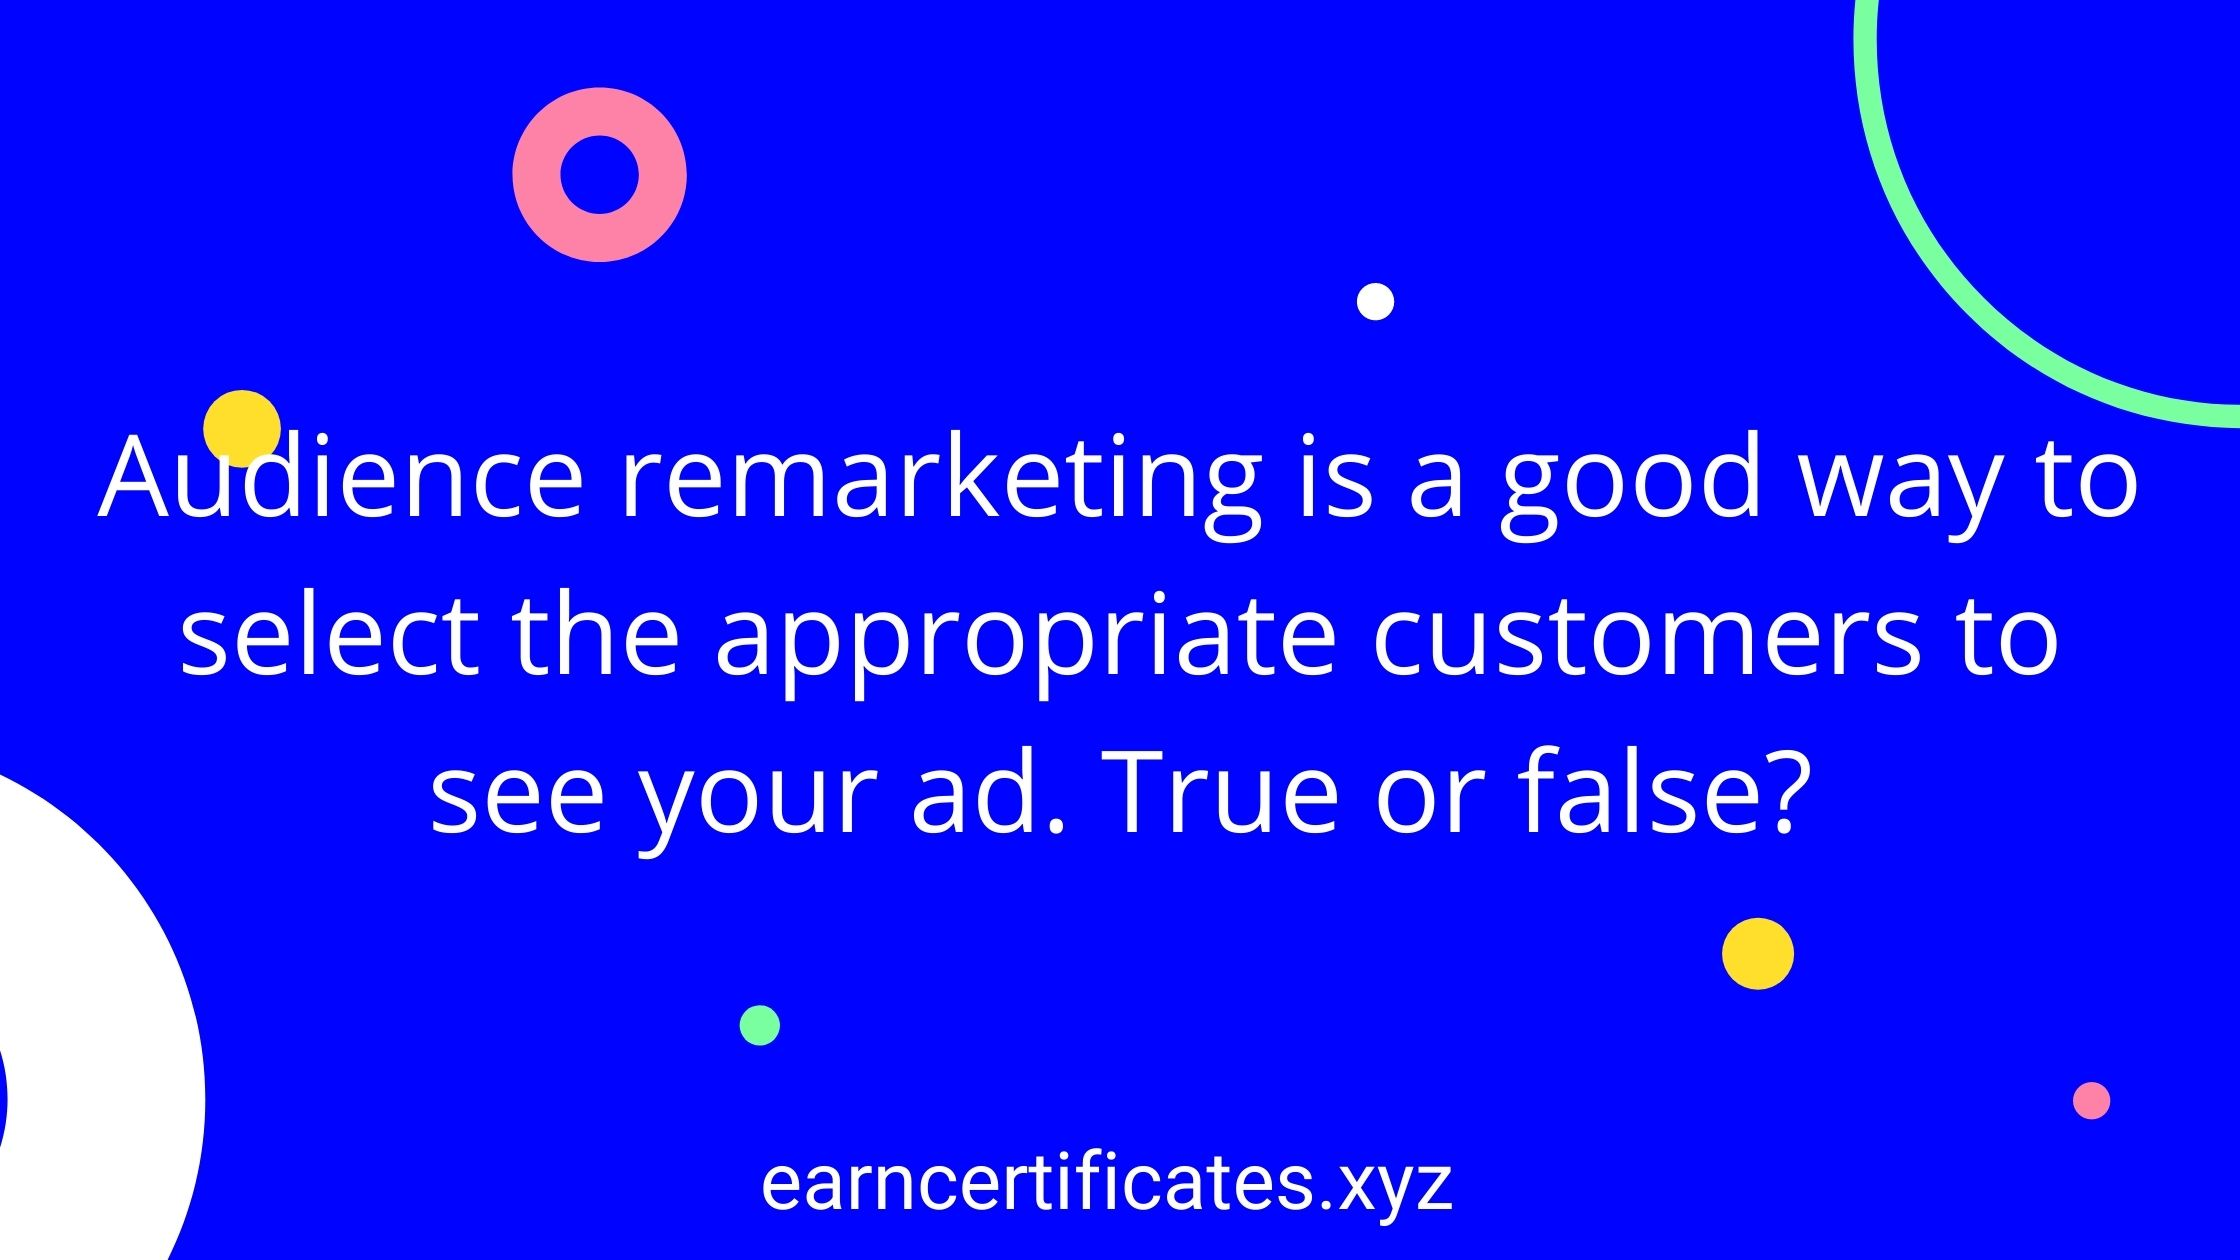 Audience remarketing is a good way to select the appropriate customers to see your ad. True or false?